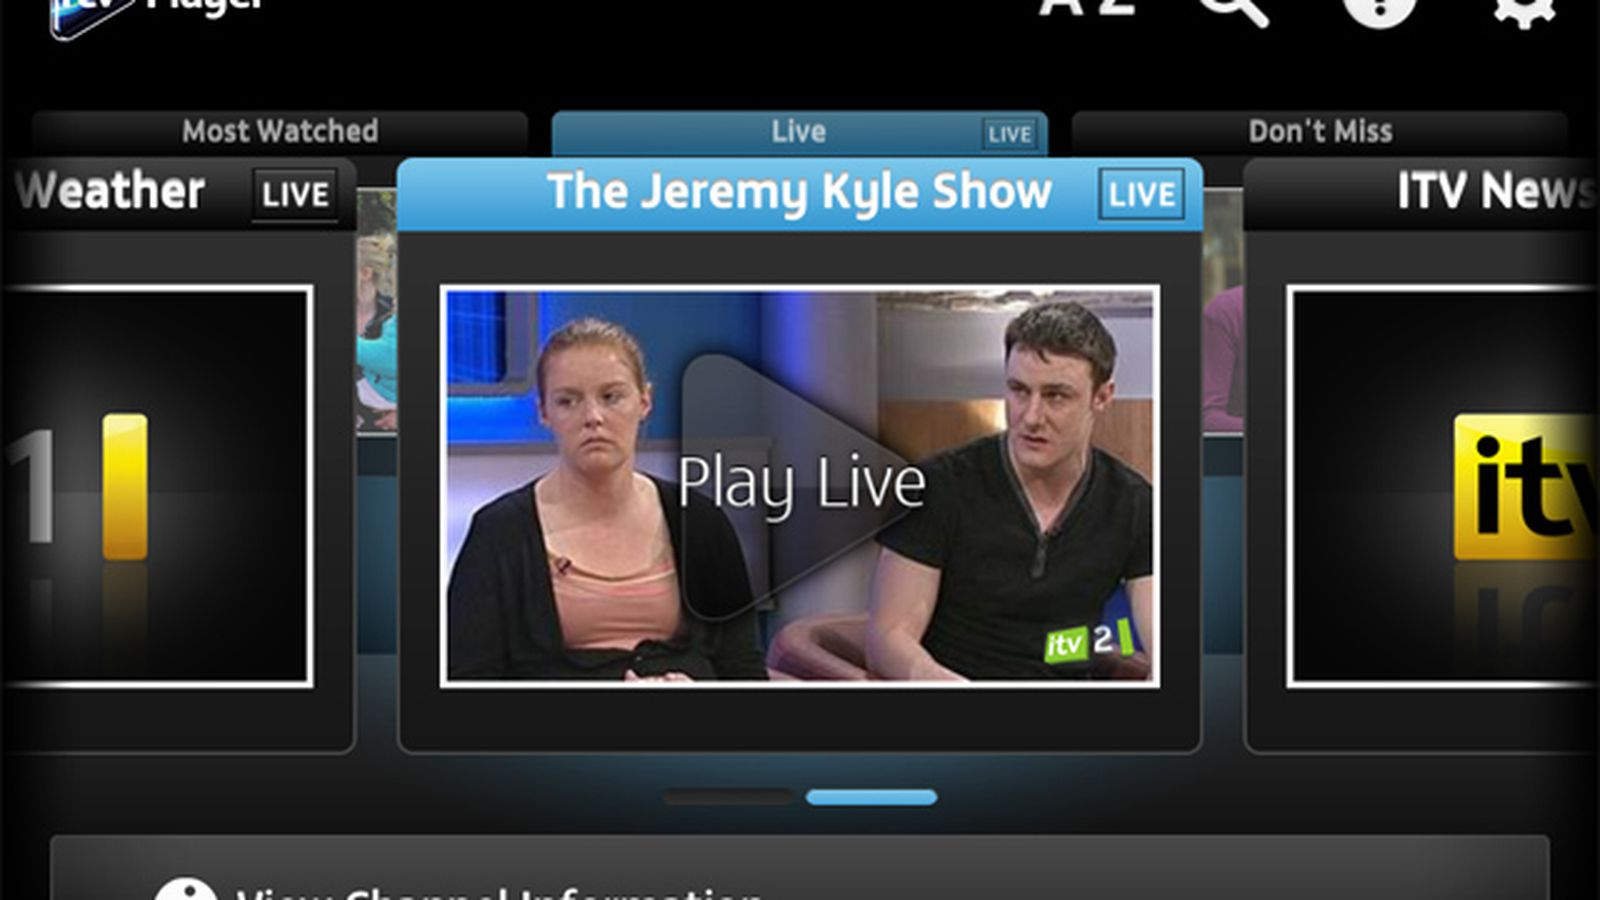 ITV adds live streaming and AirPlay Mirroring to iOS app - The Verge